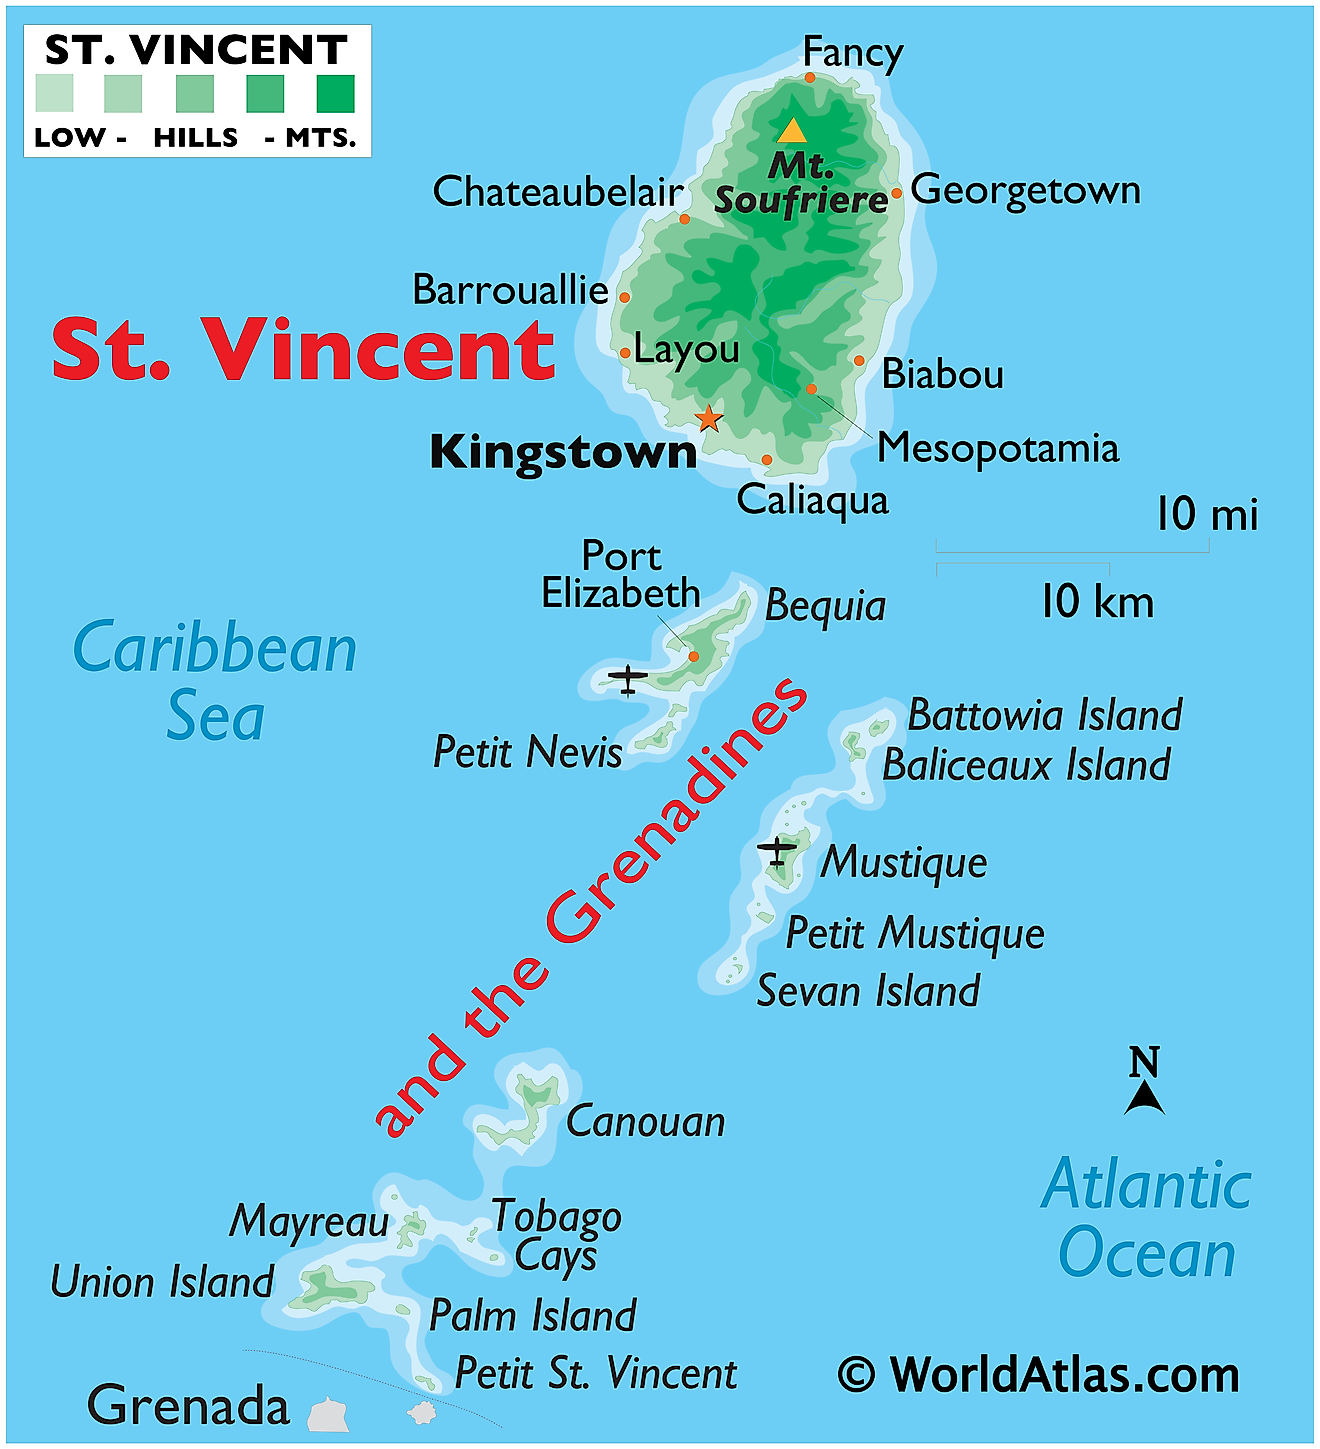 Physical Map of St. Vincent and The Grenadines showing relief, islands, ports, airport, important settlements, etc.